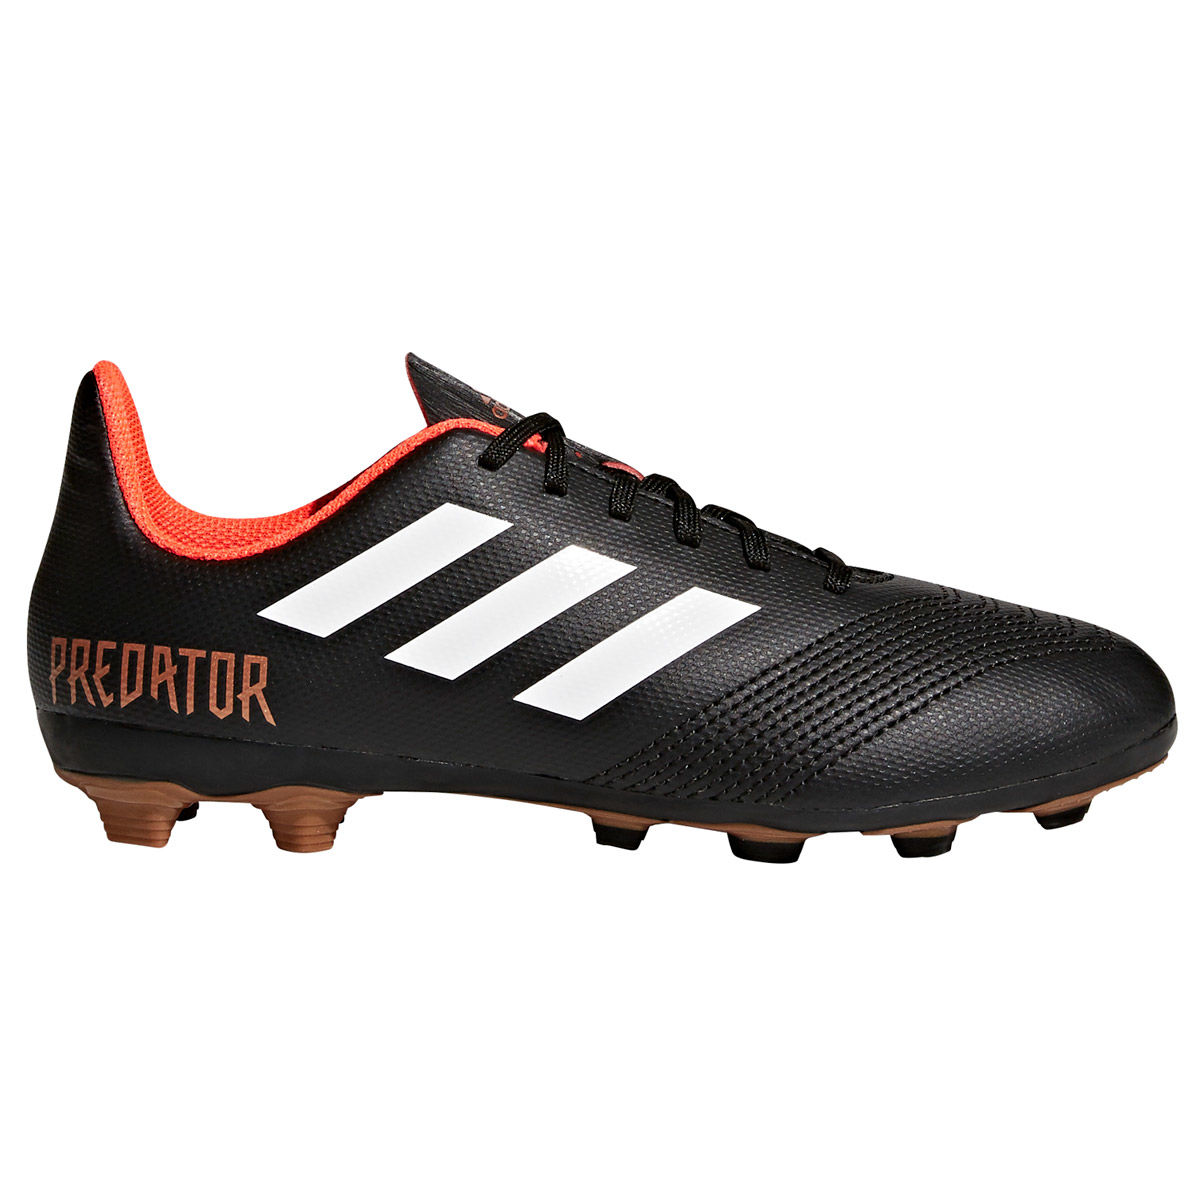 adidas Predator 18.4 Big Kids/Little Kids Firm Ground Soccer Cleat